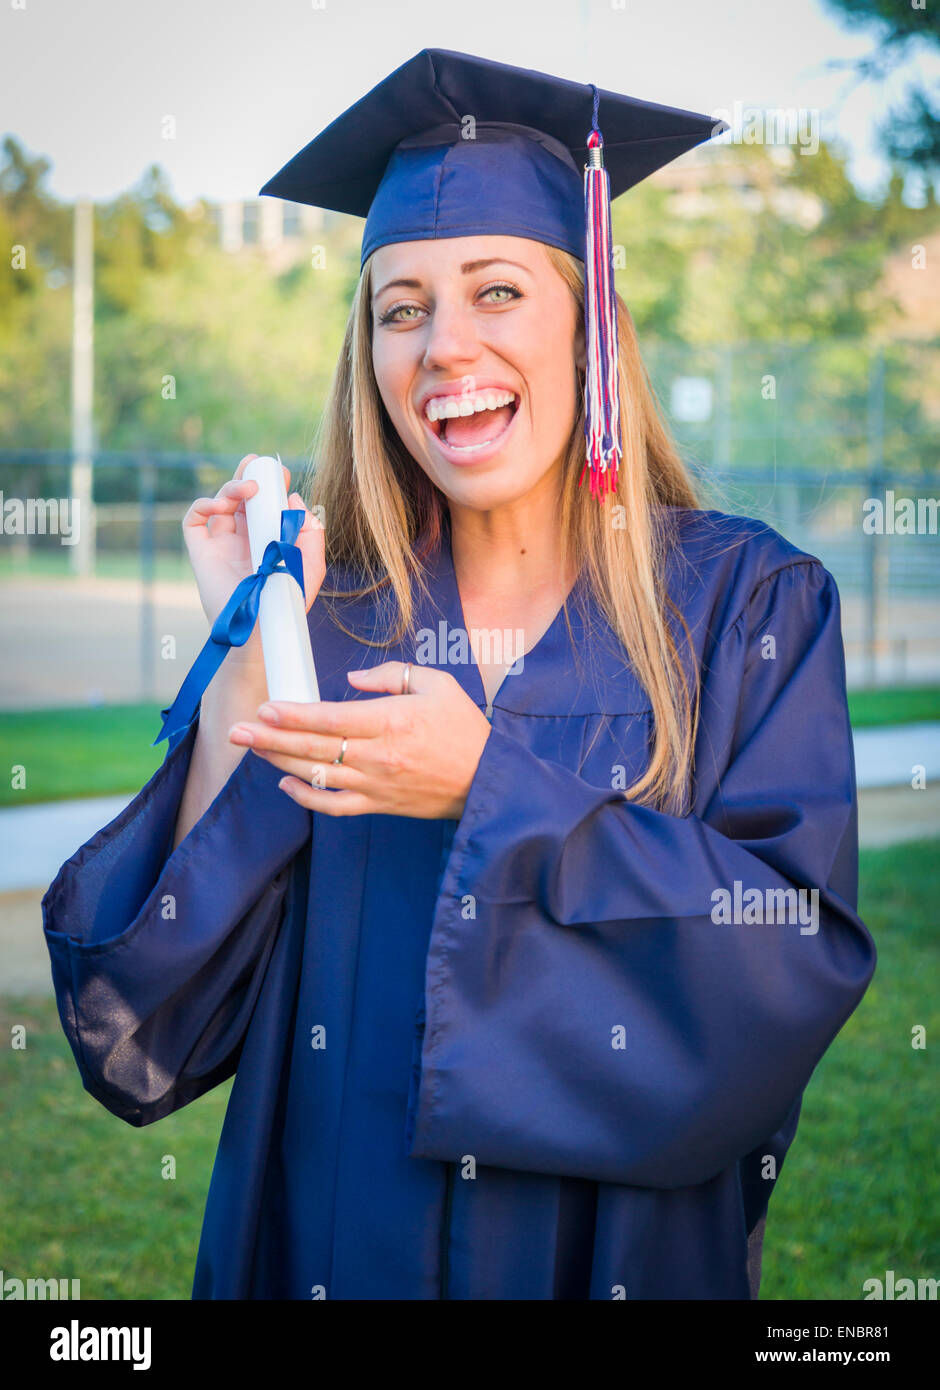 Excited and Expressive Young Woman Holding Diploma in Cap and Gown Outdoors. - Stock Image